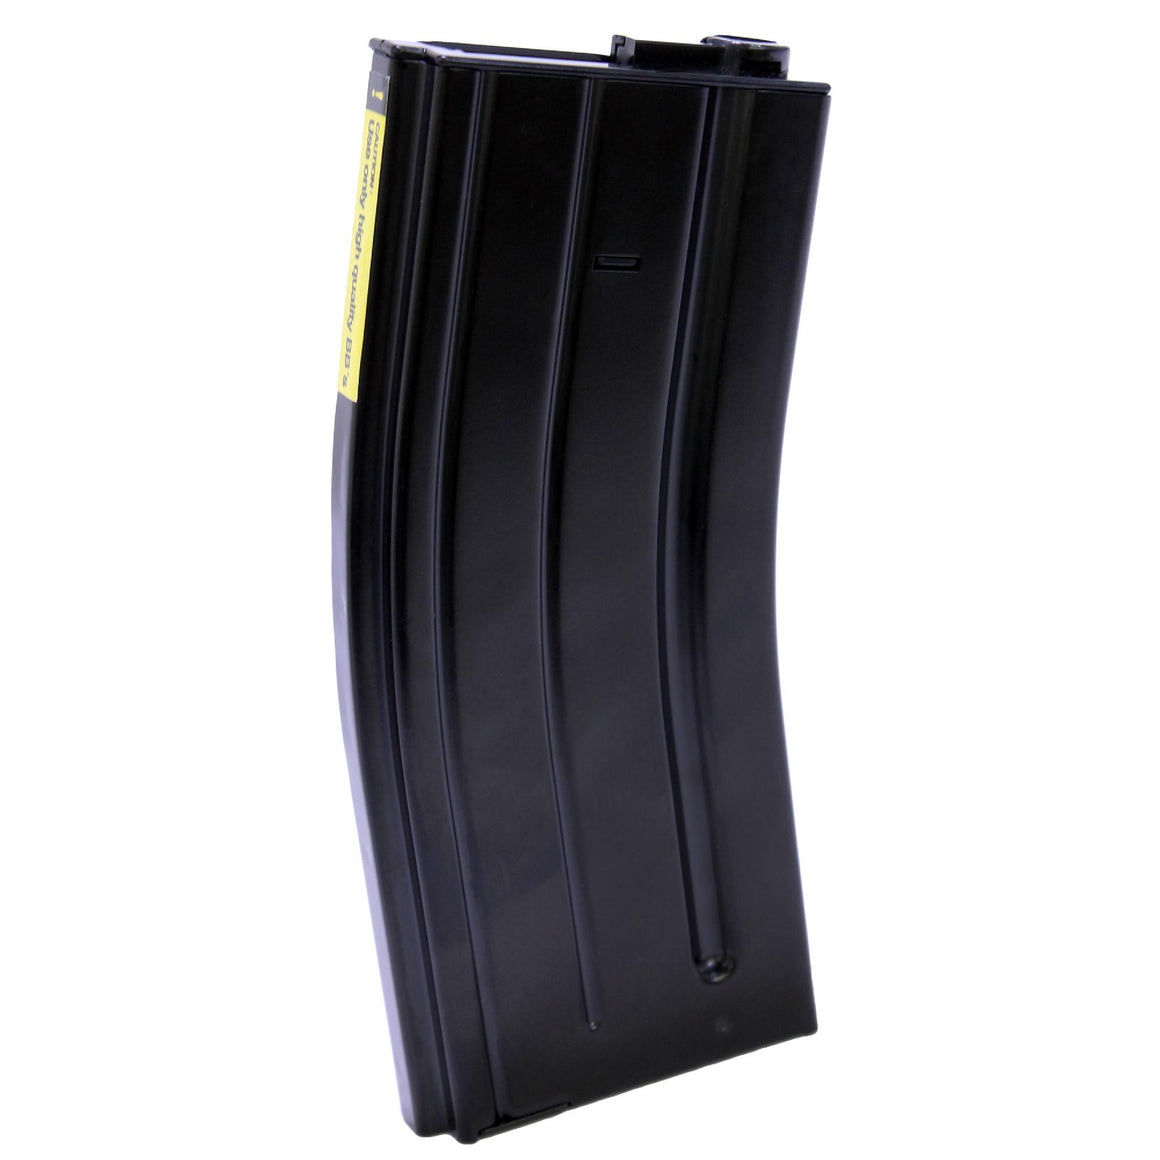 Elite Force Airsoft Magazine for M4 - M16 Hi-Cap, 300 Round, Steel Black